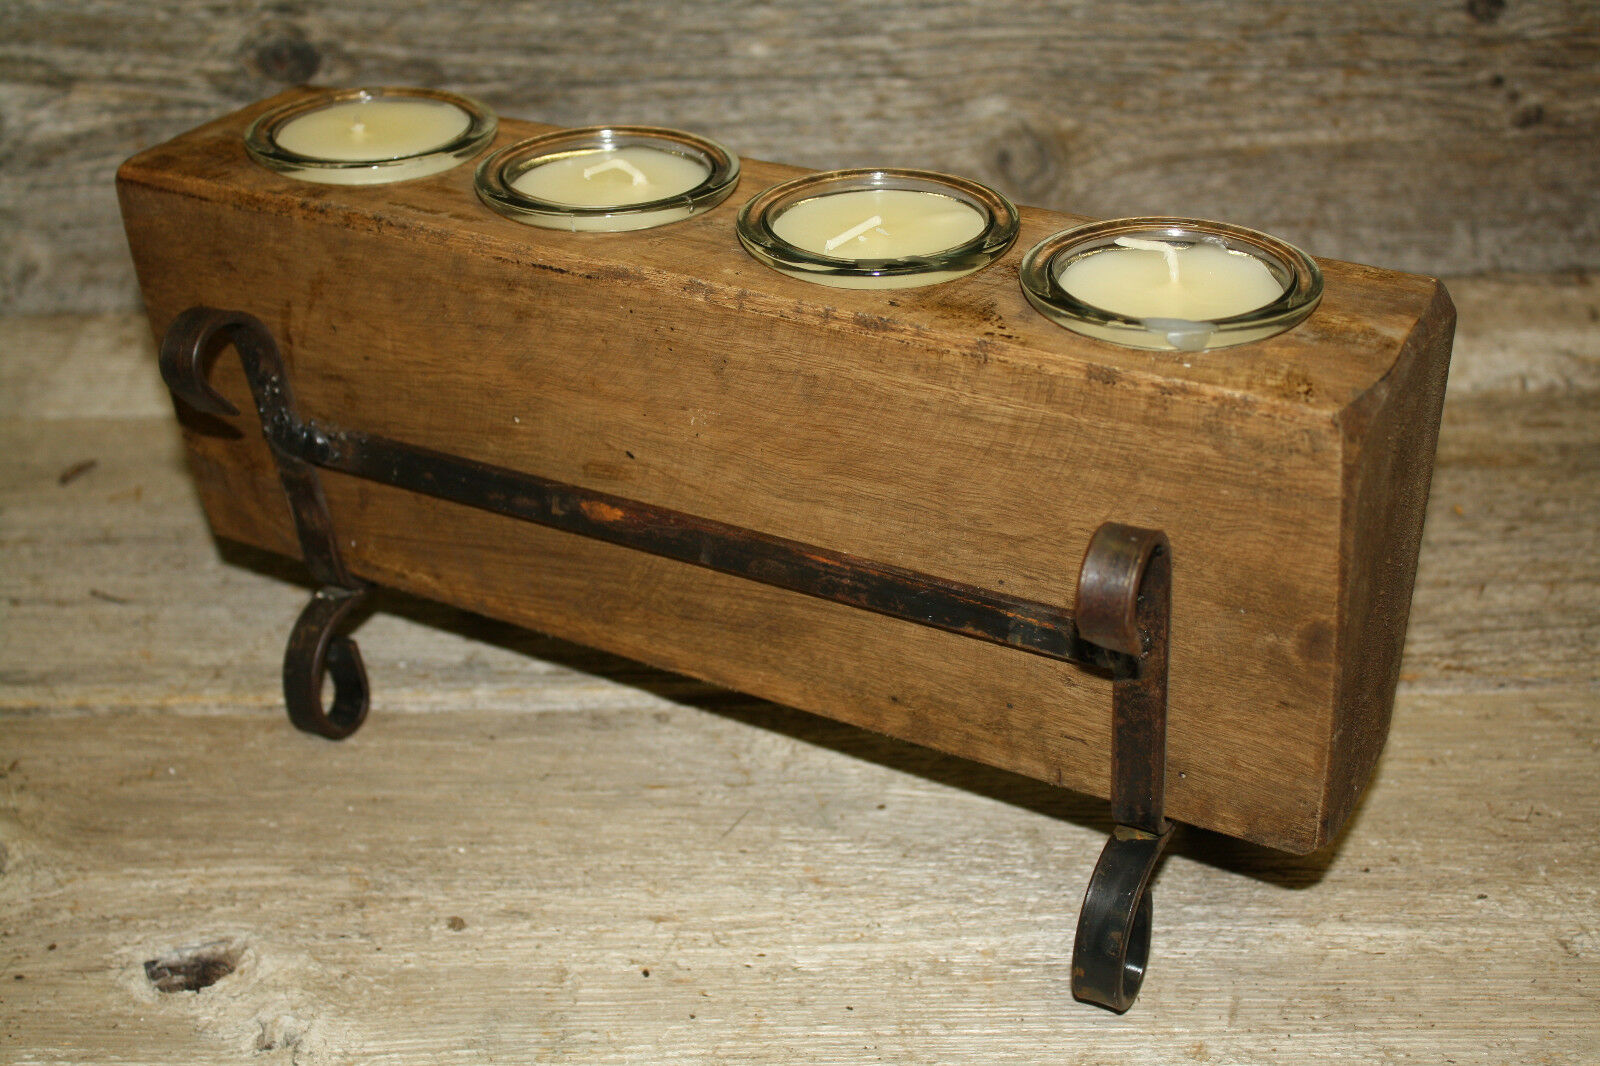 4 Hole Wooden Sugar Mold Wood Candle Holder Primitive Clear Glass Votives